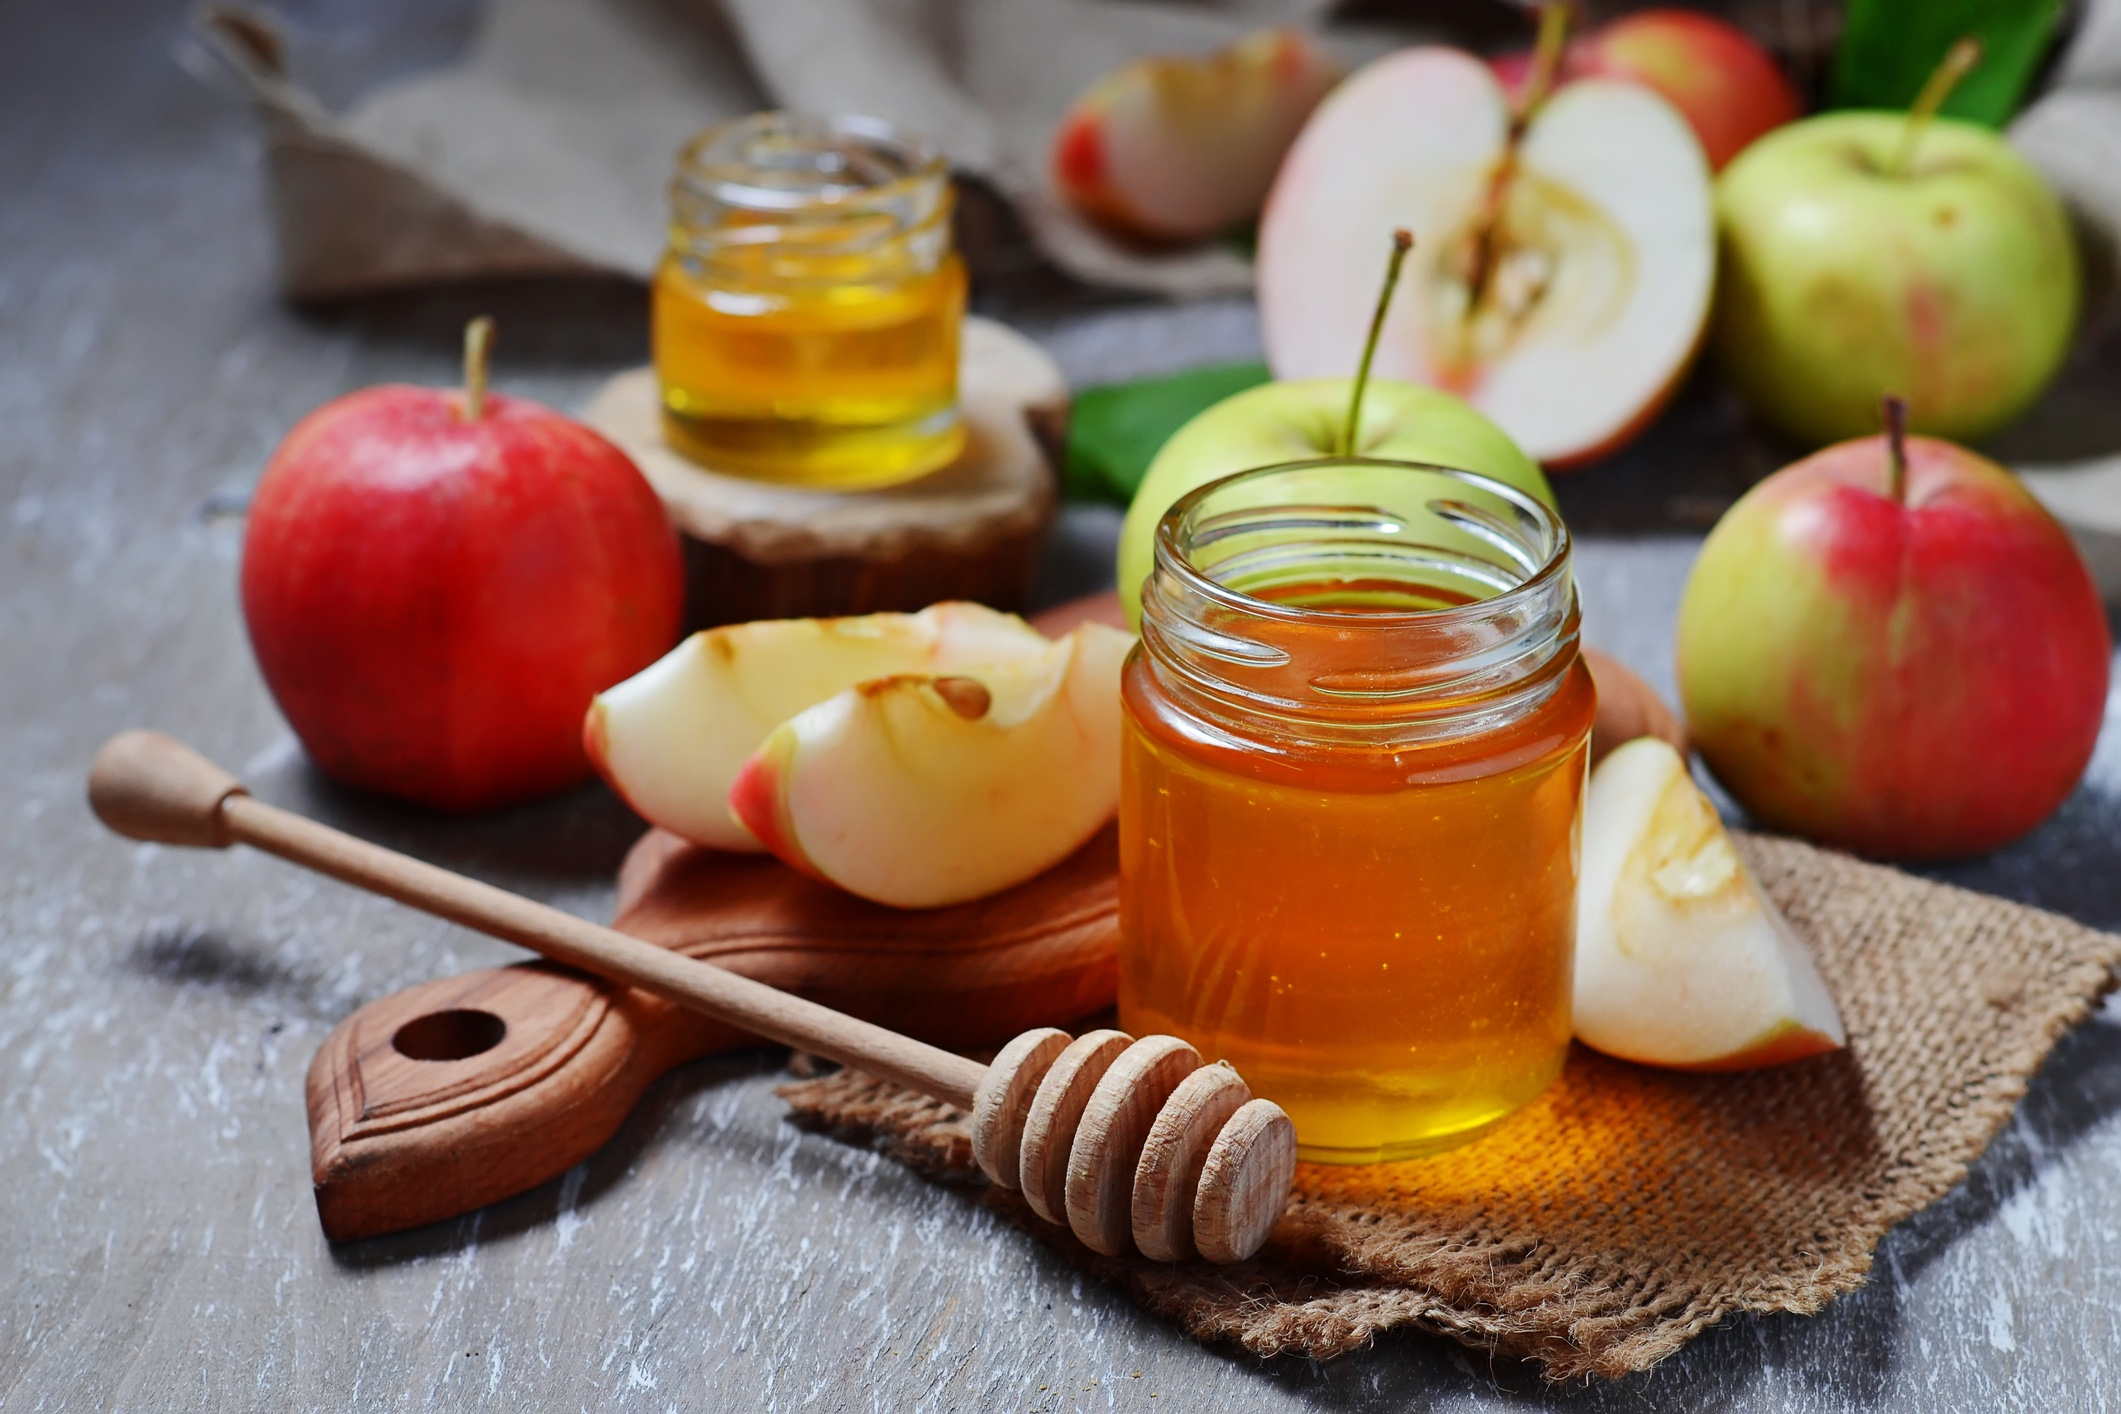 Apples with honey for Rosh Hashanah